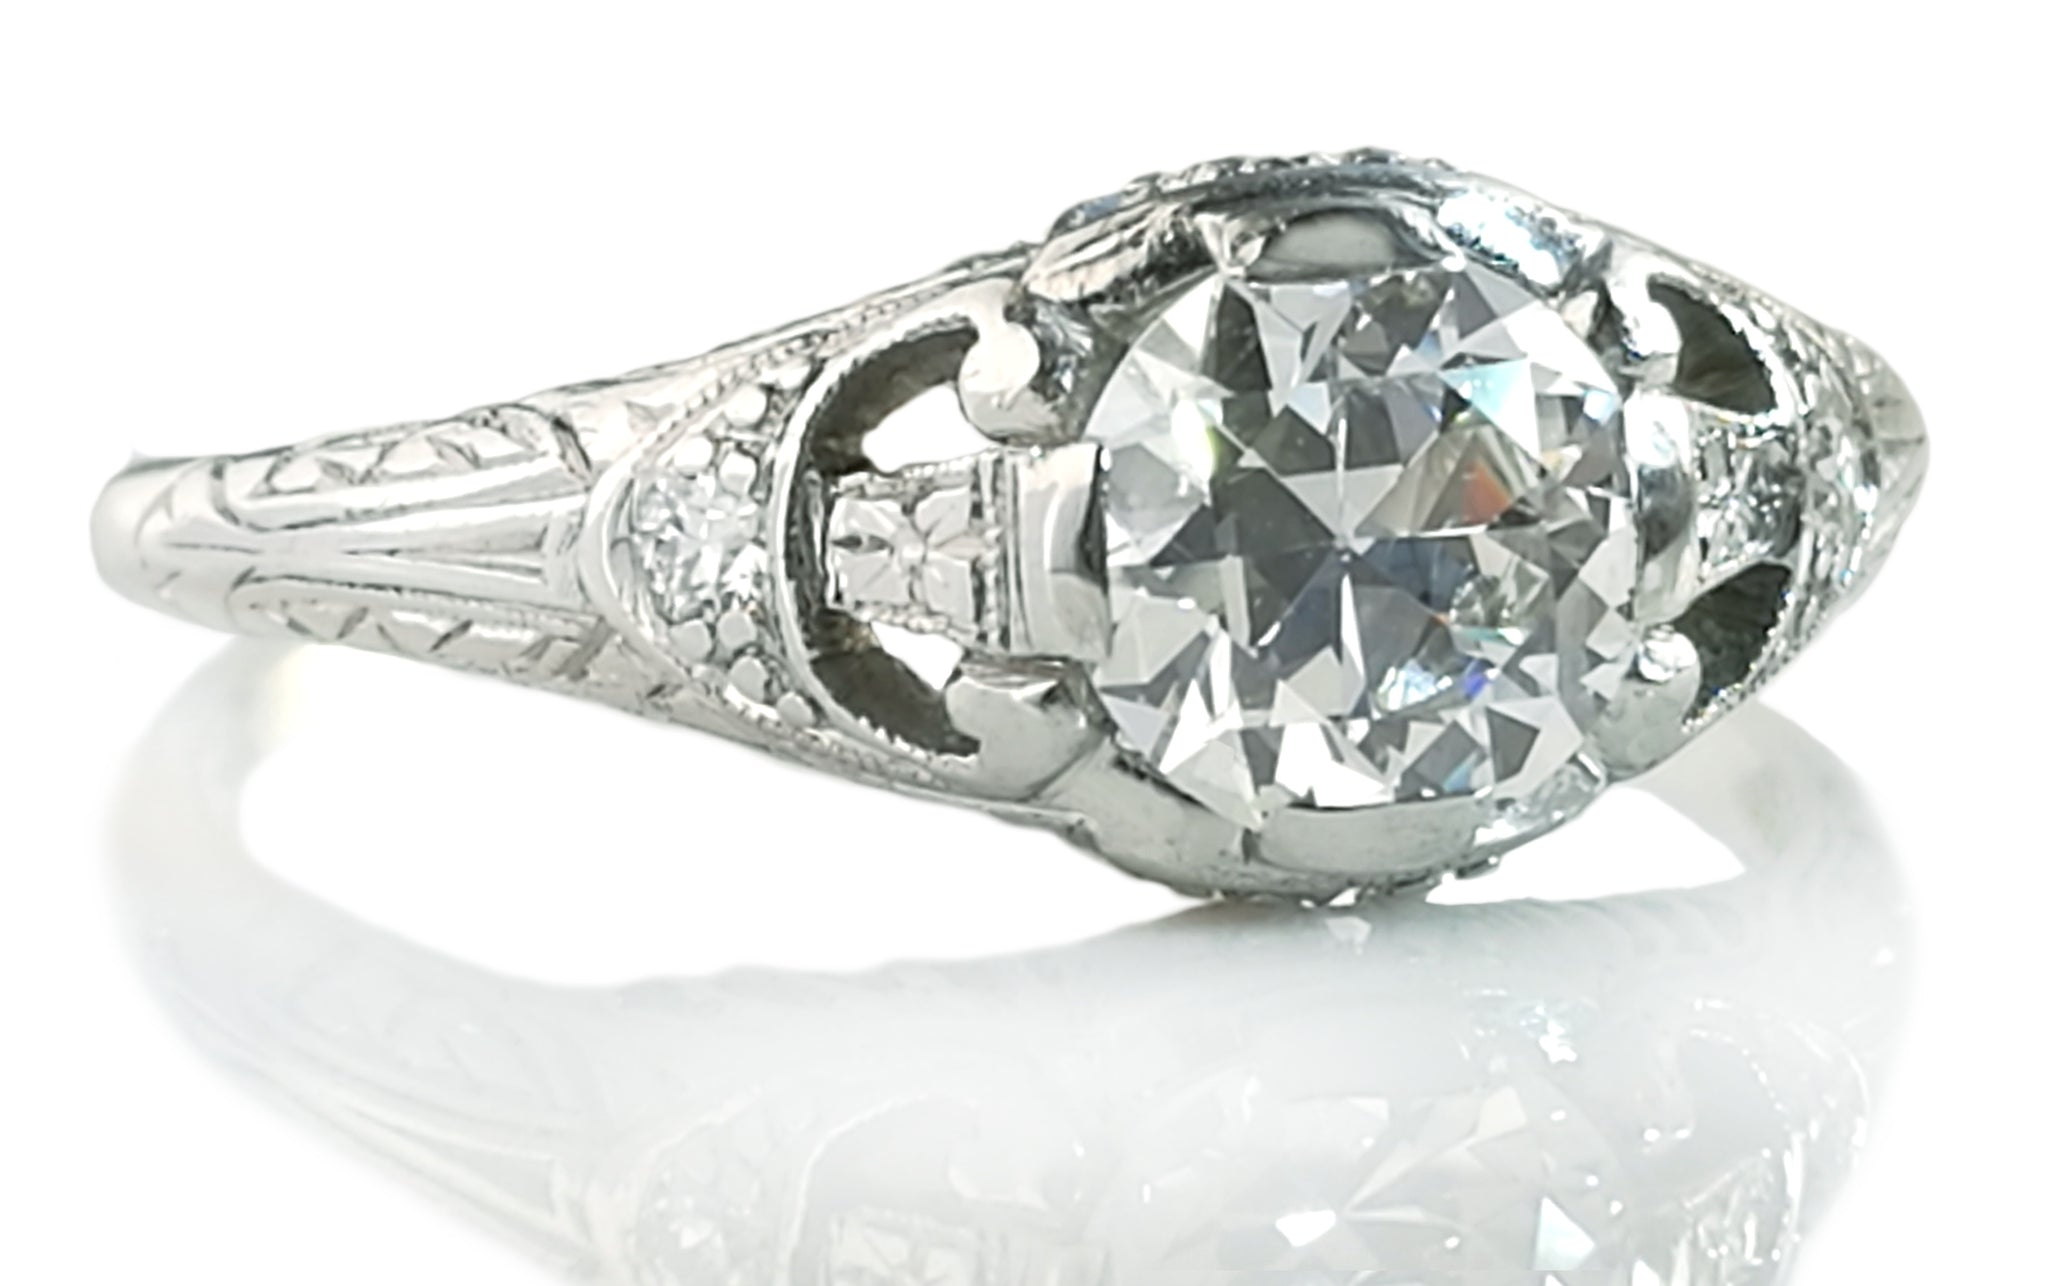 9f4ee1d33 Antique Art Deco .75ct Old Cut Diamond 1920s Tiffany & Co Engagement Ring  Box